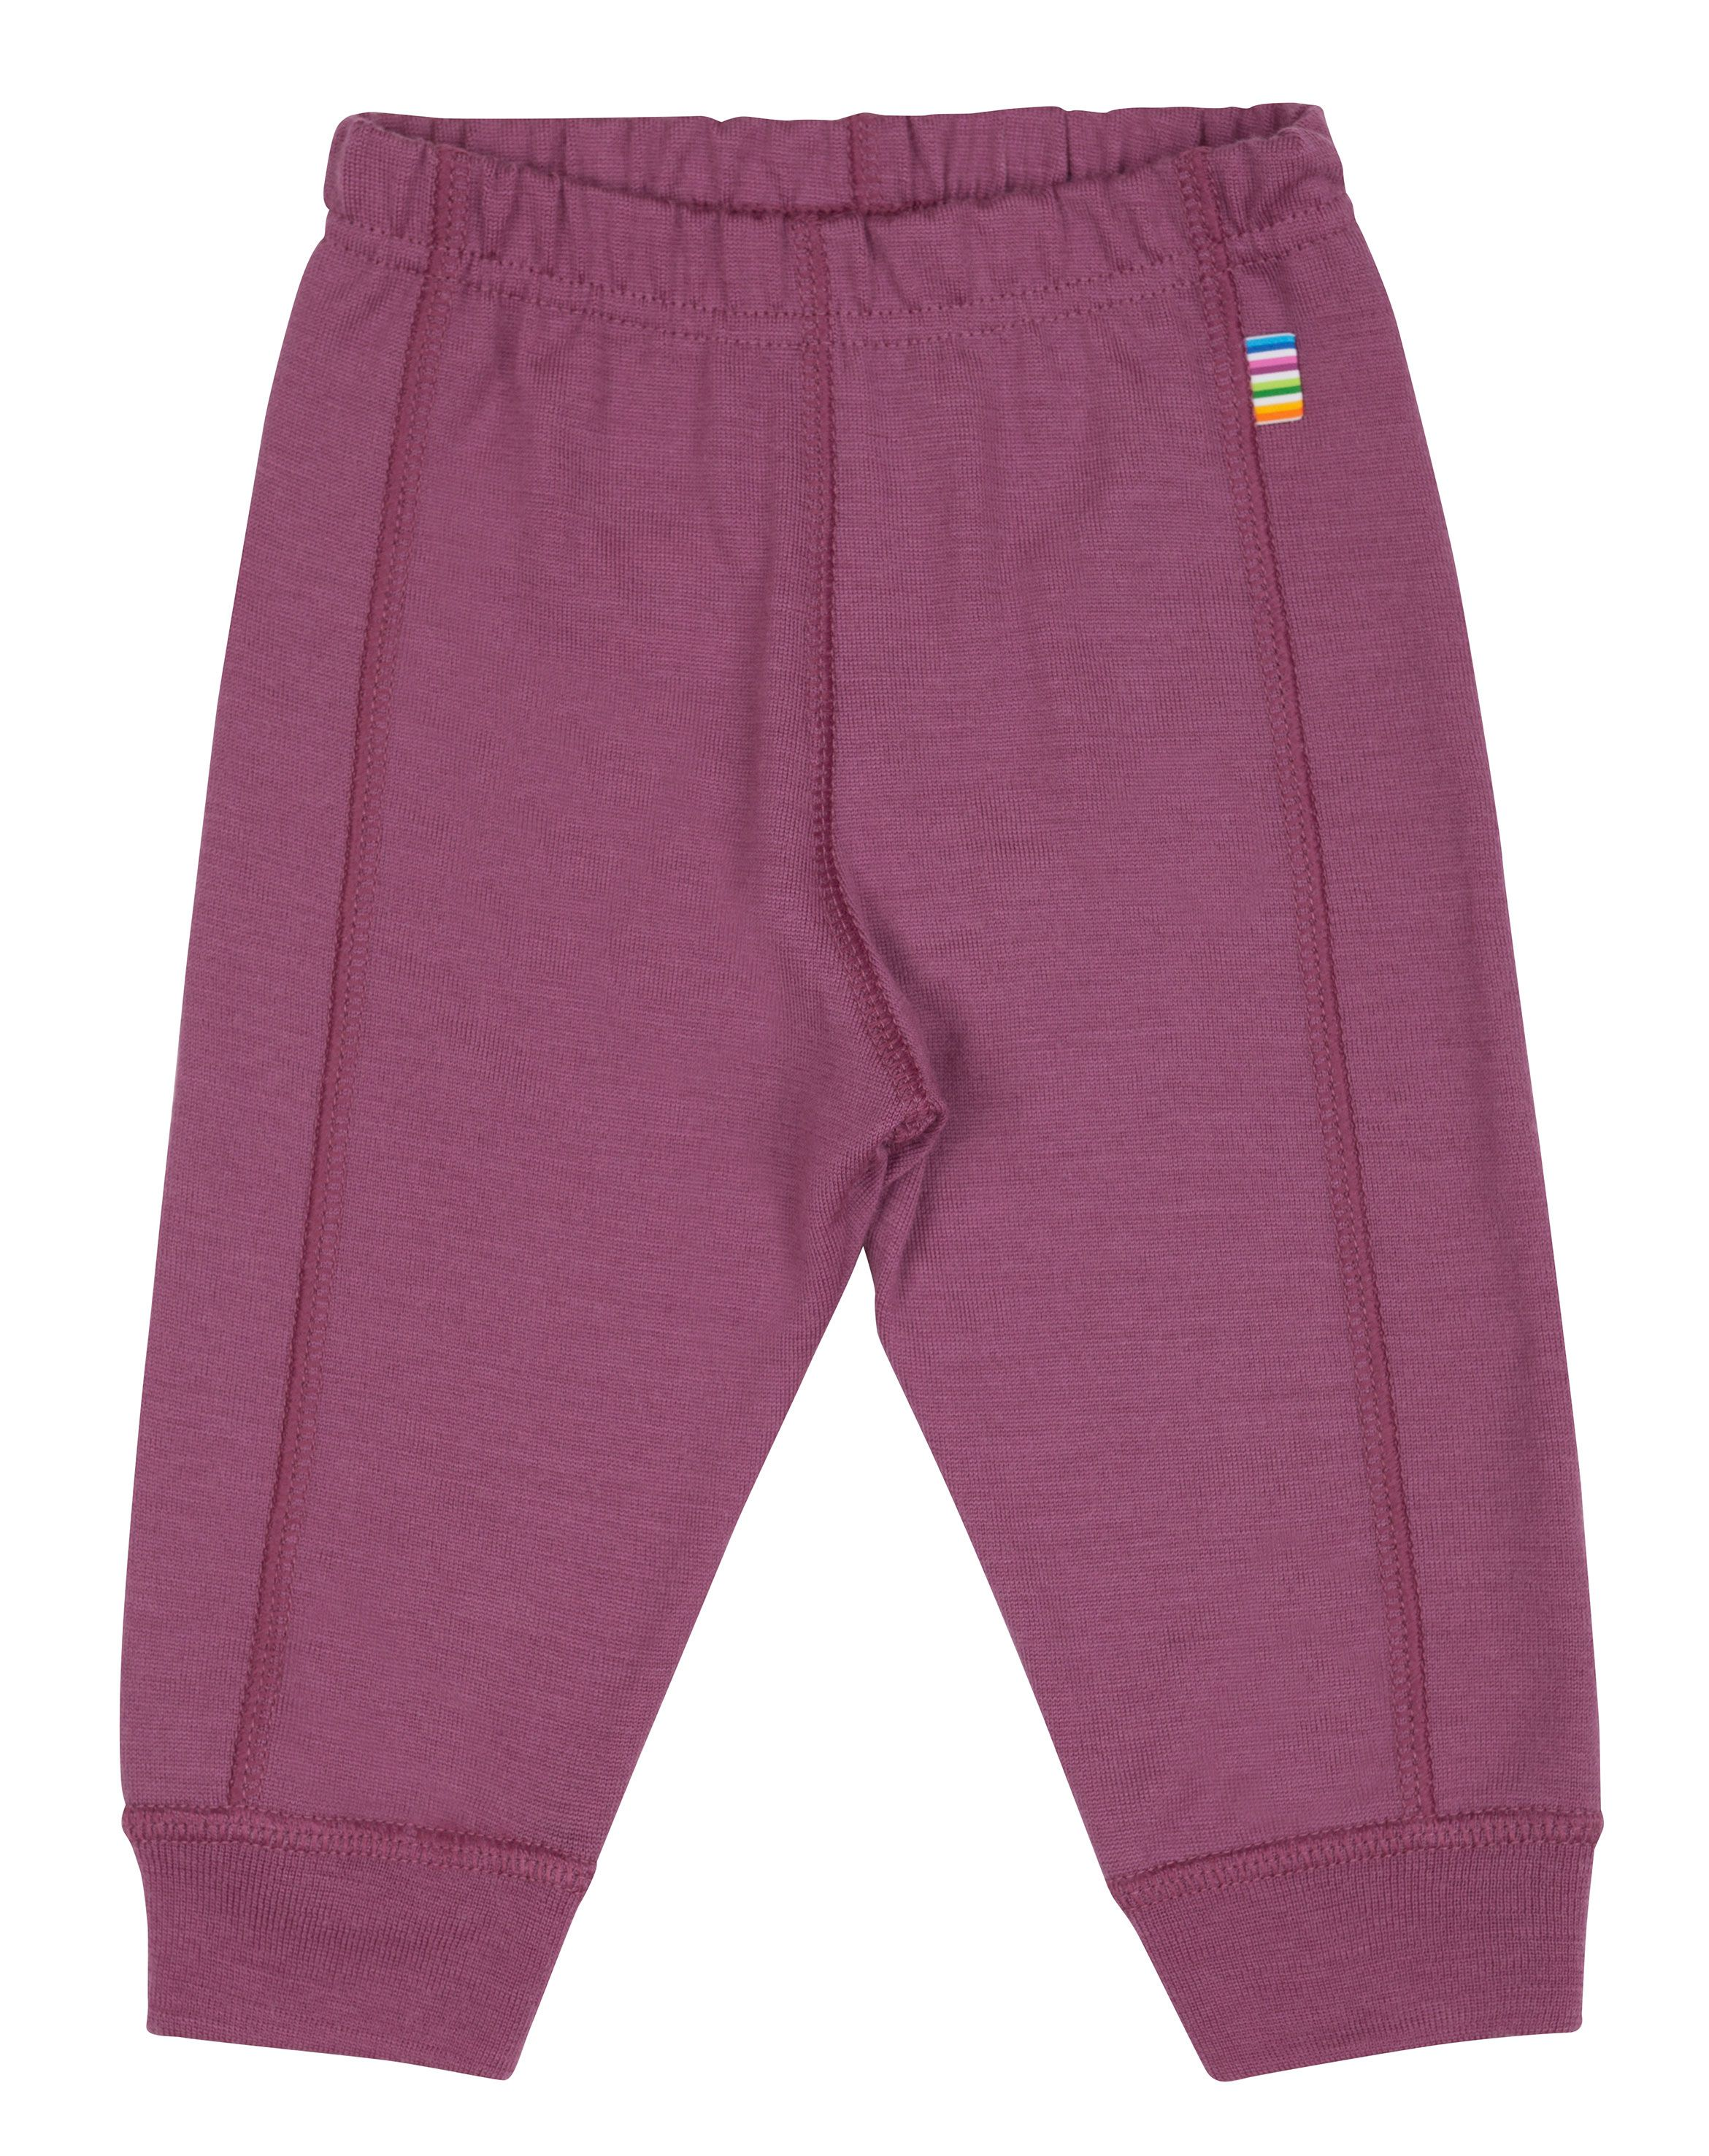 Image of   Leggings fra Joha i uld i Plum